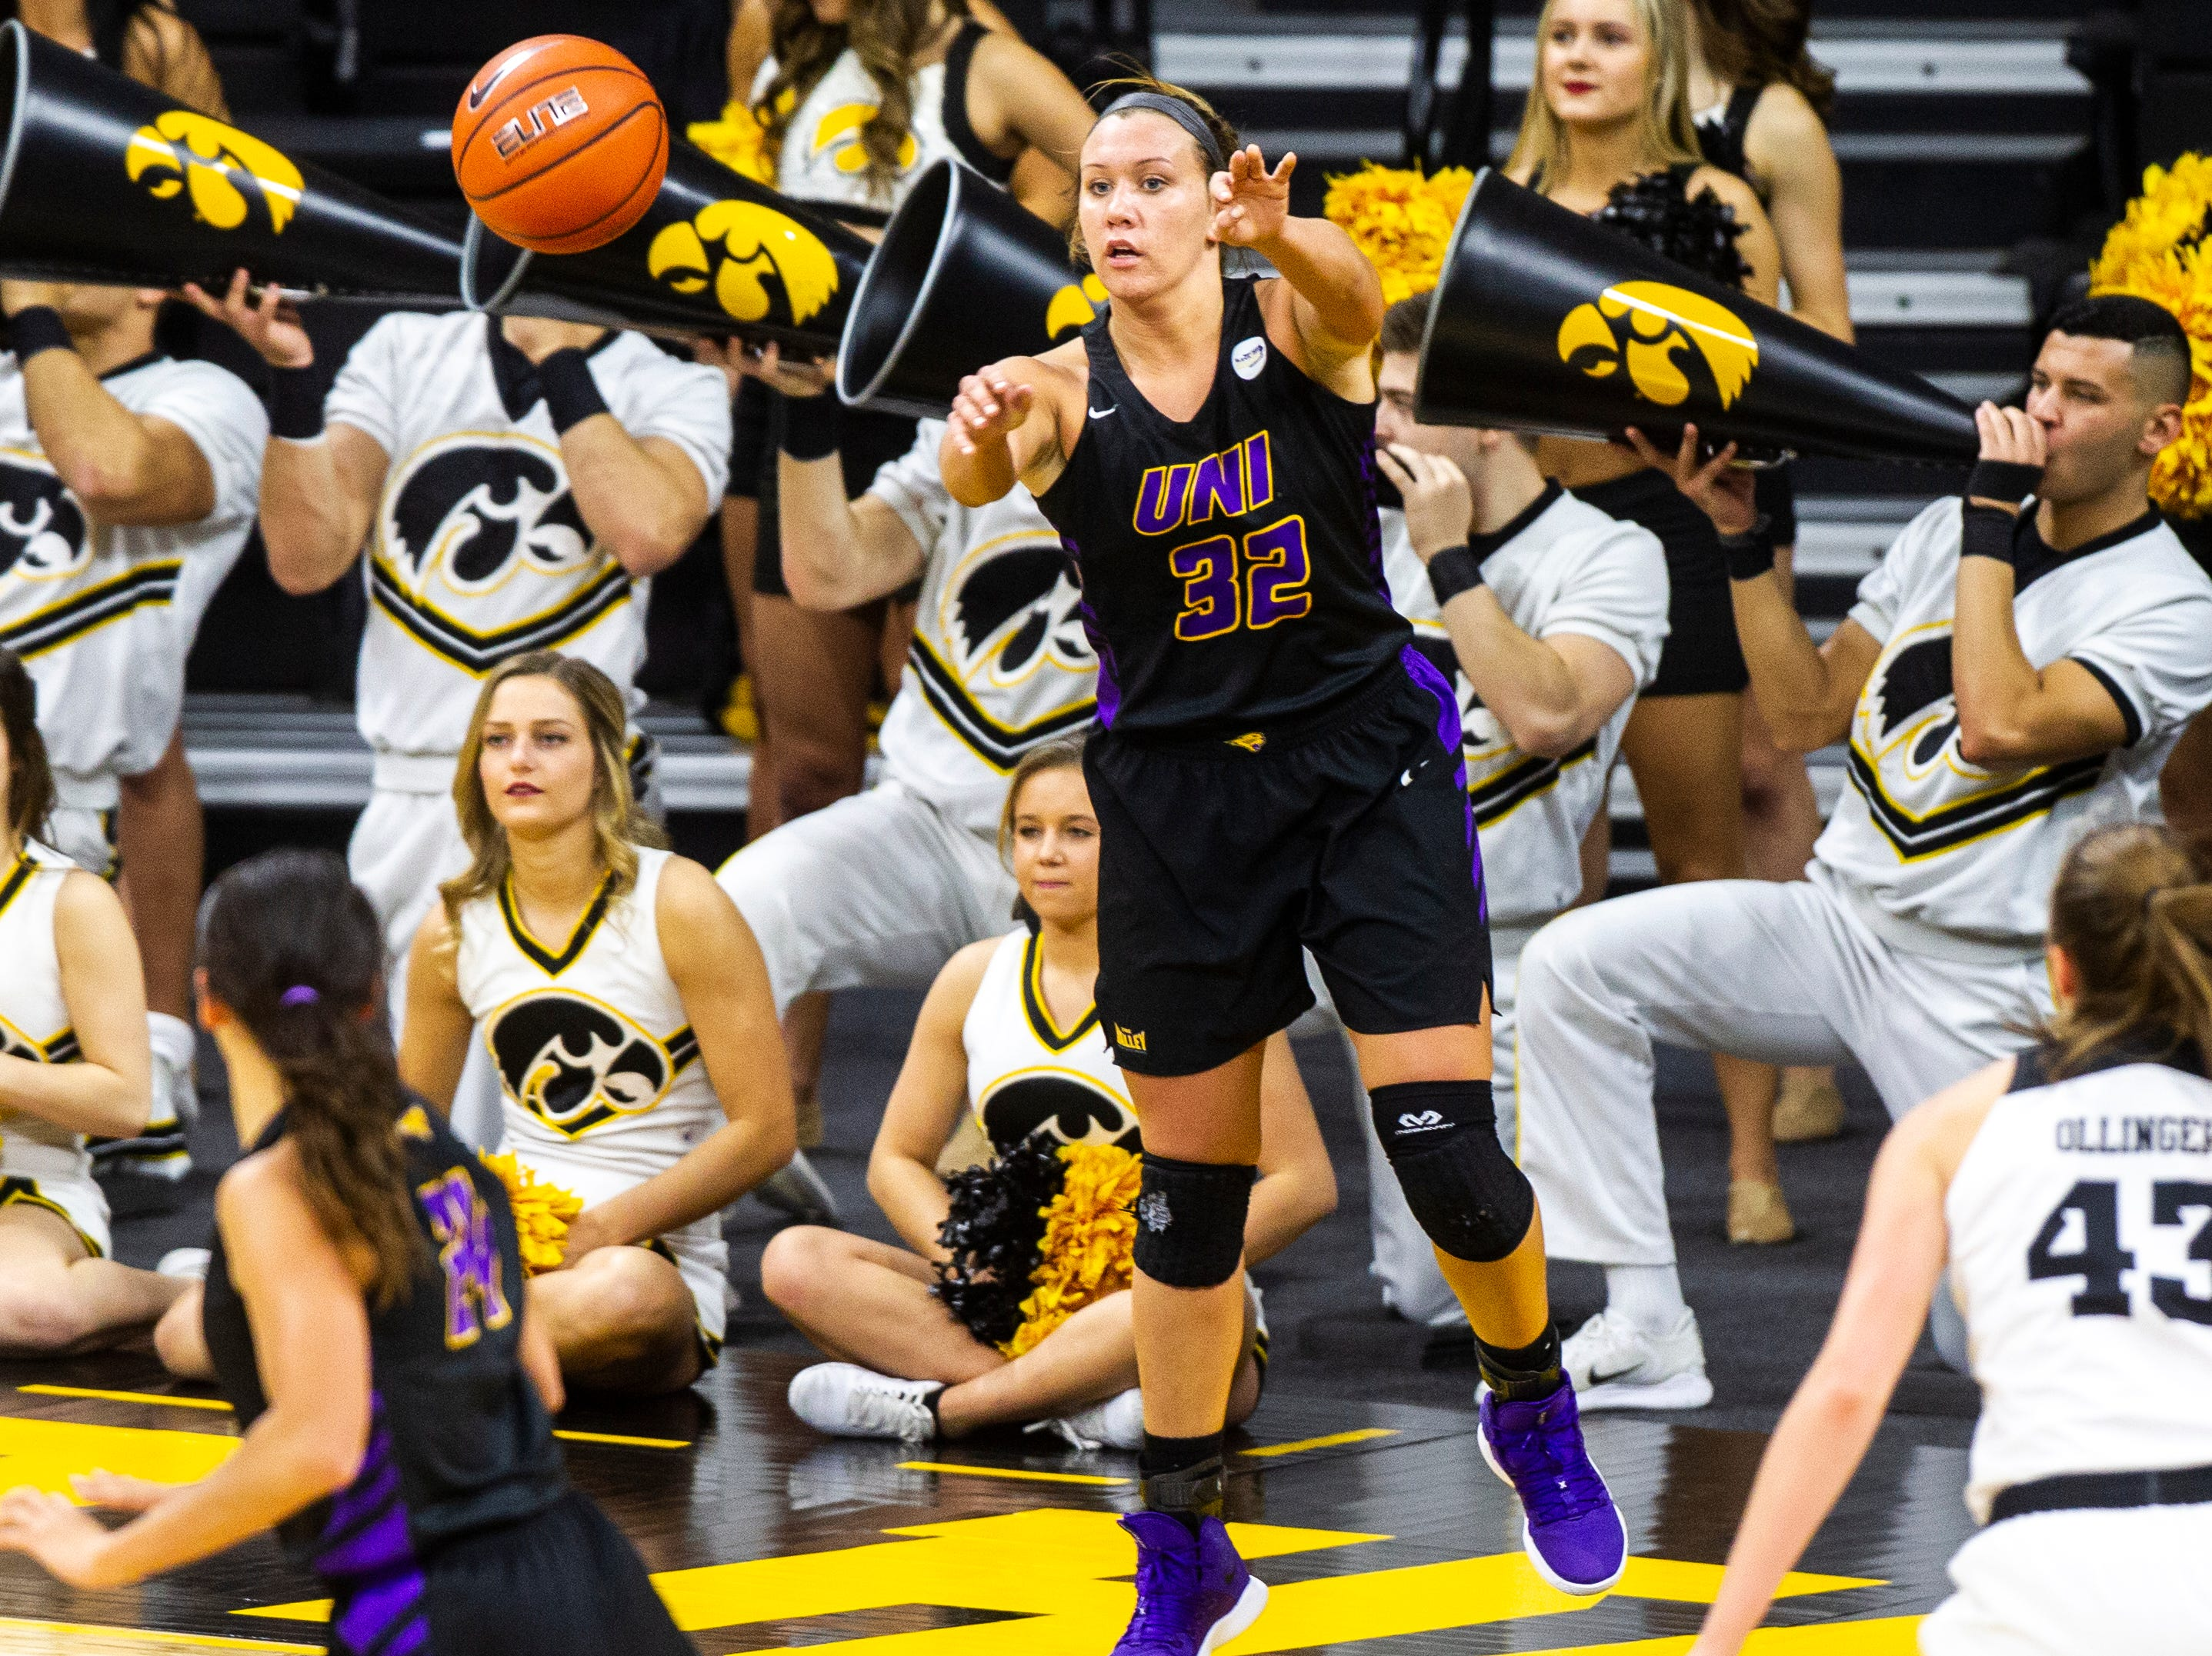 Northern Iowa forward Heidi Hillyard (32) inbounds the ball during a NCAA women's basketball game on Sunday, Dec. 16, 2018, at Carver-Hawkeye Arena in Iowa City.